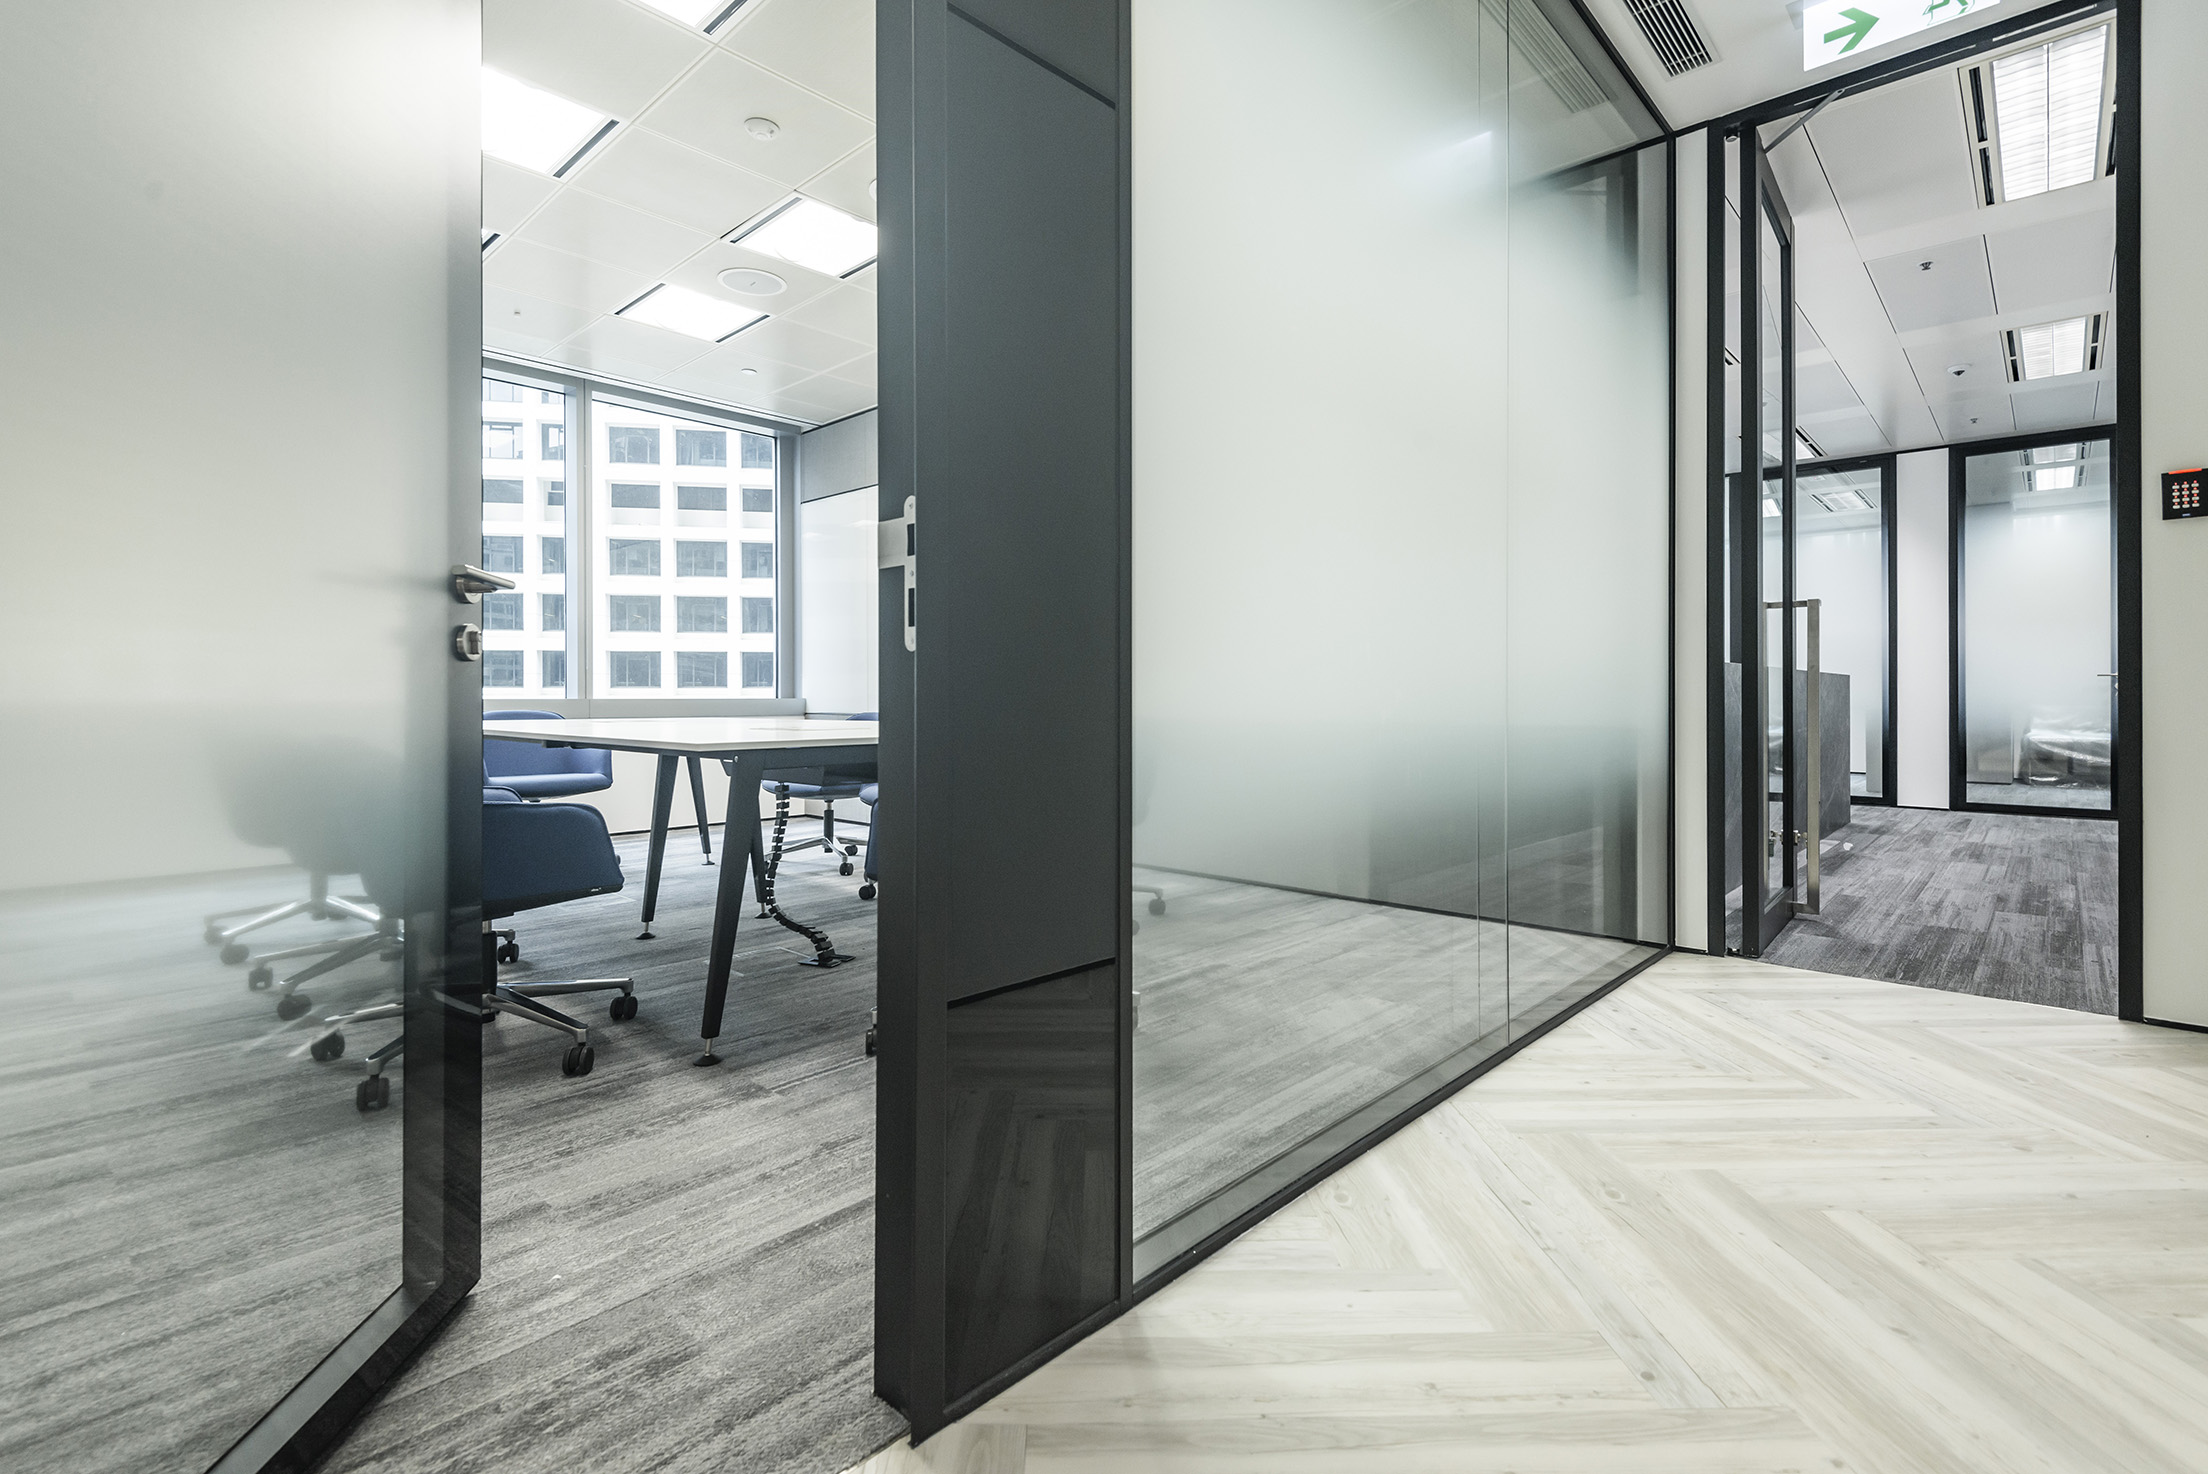 jeb-partitions-x-series-office-hk-04.jpg